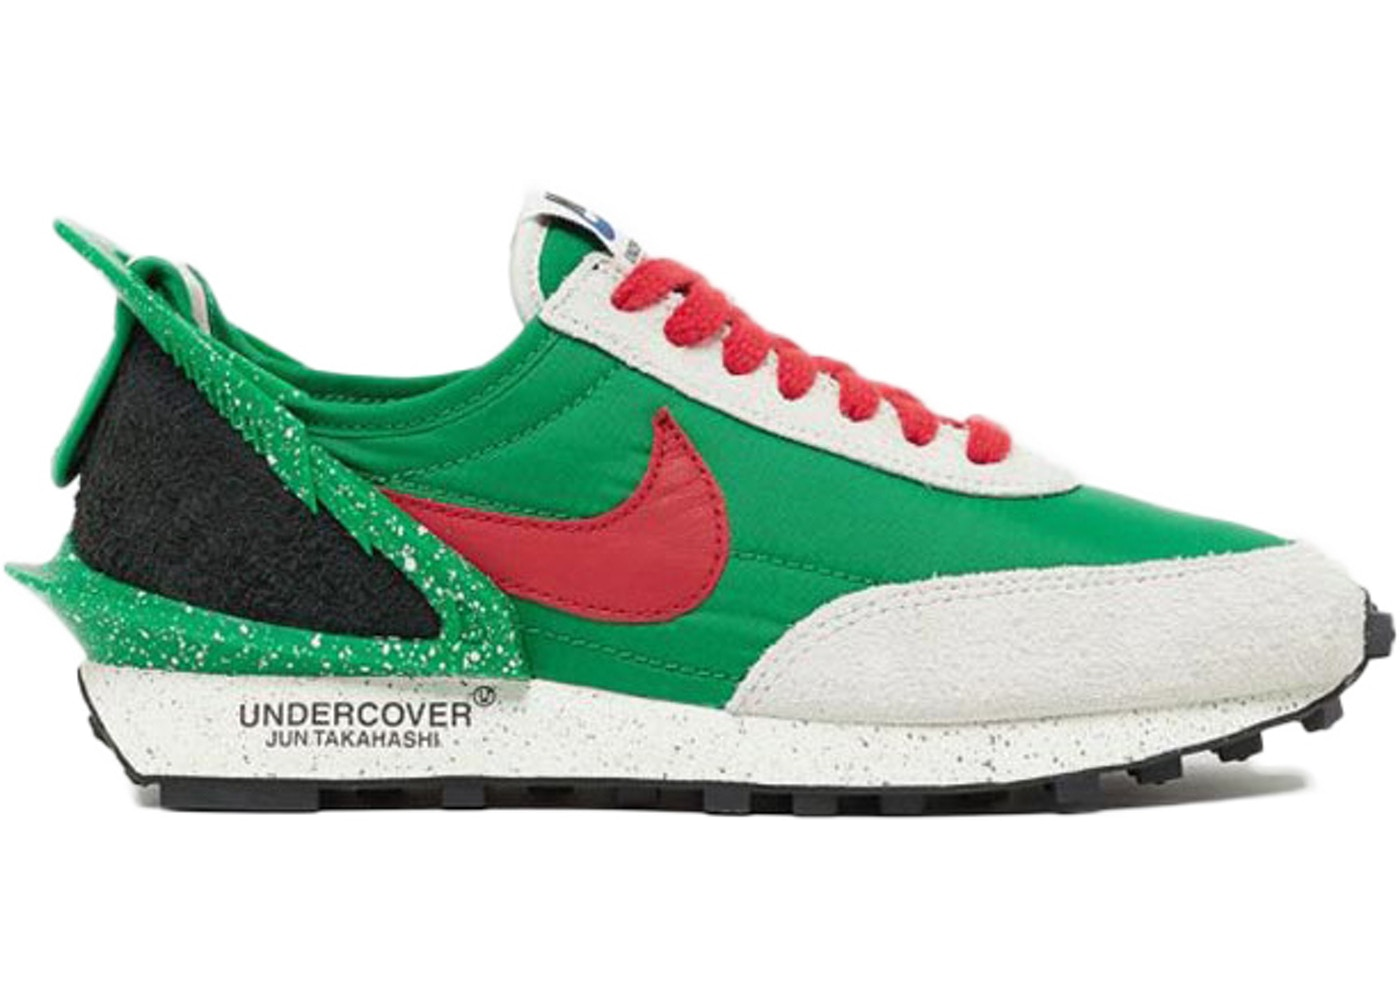 19061464 Nike Daybreak Undercover Lucky Green Red (W) - CJ3295-300